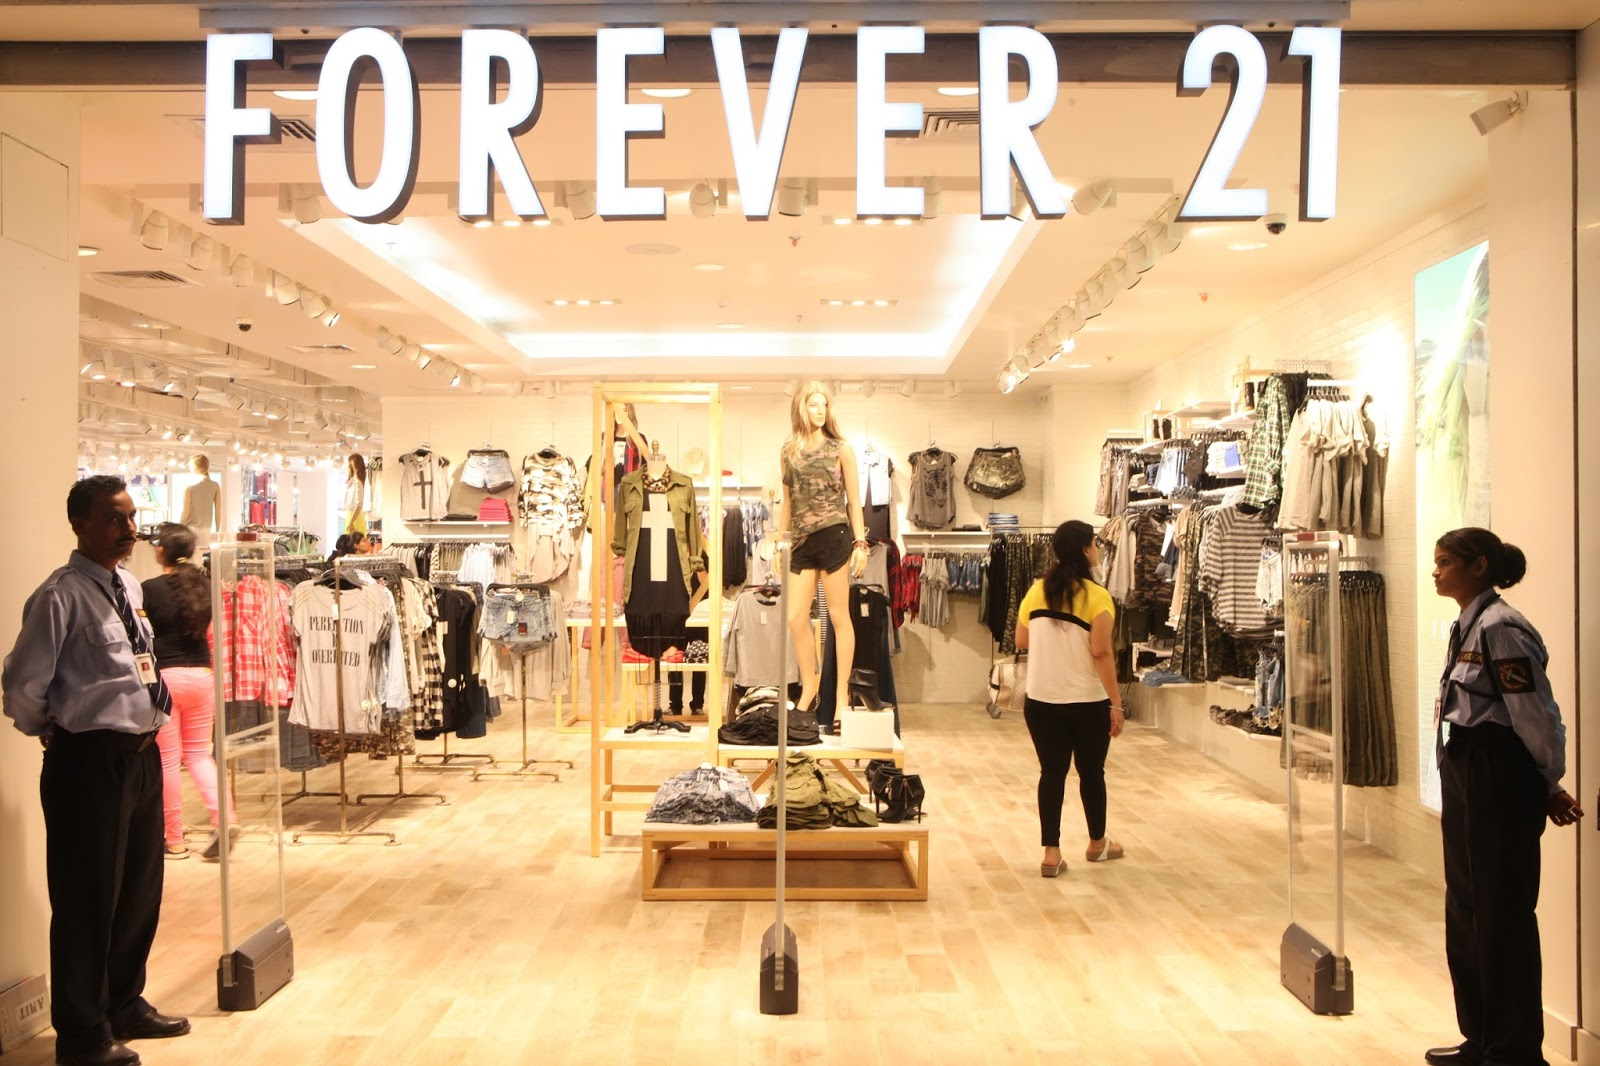 21 Forever Forever 21 39s New Store Opened At The Pacific Mall Delhi